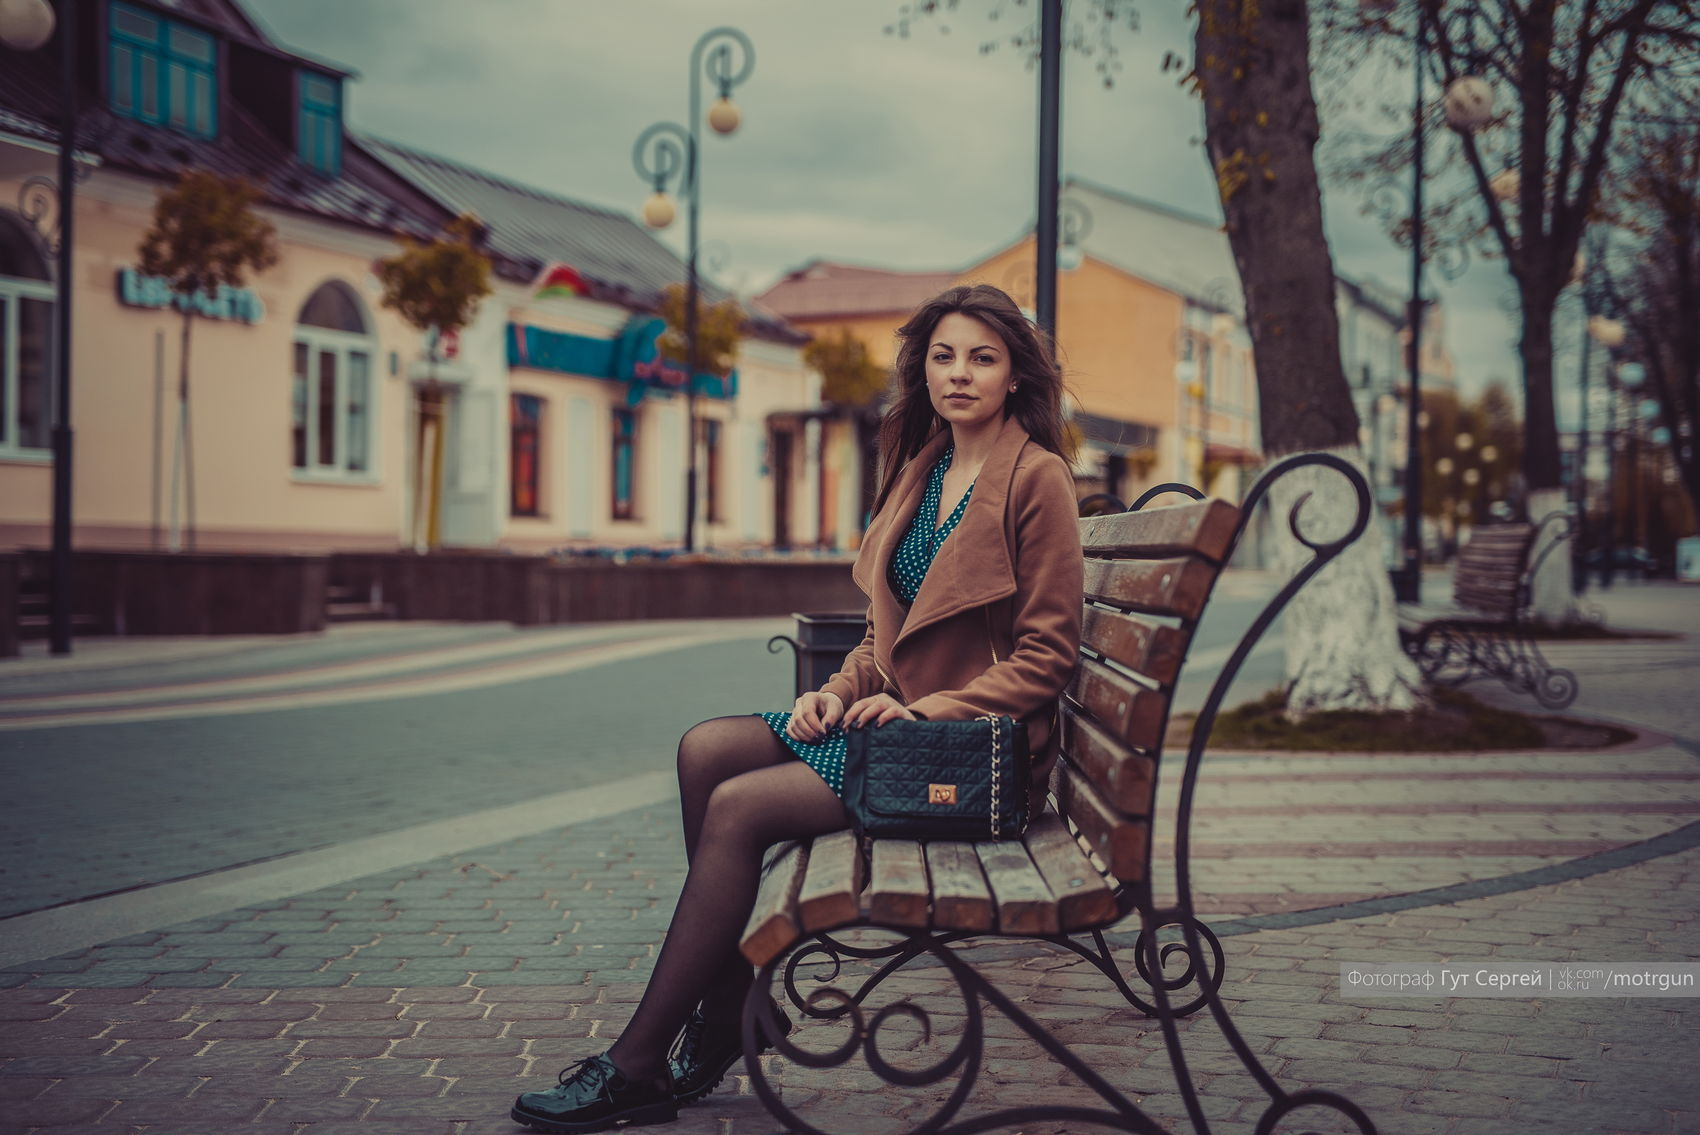 Architecture Beautiful Woman Bench Day Long Hair One Person Outdoors Real People Women Young Adult Young Women